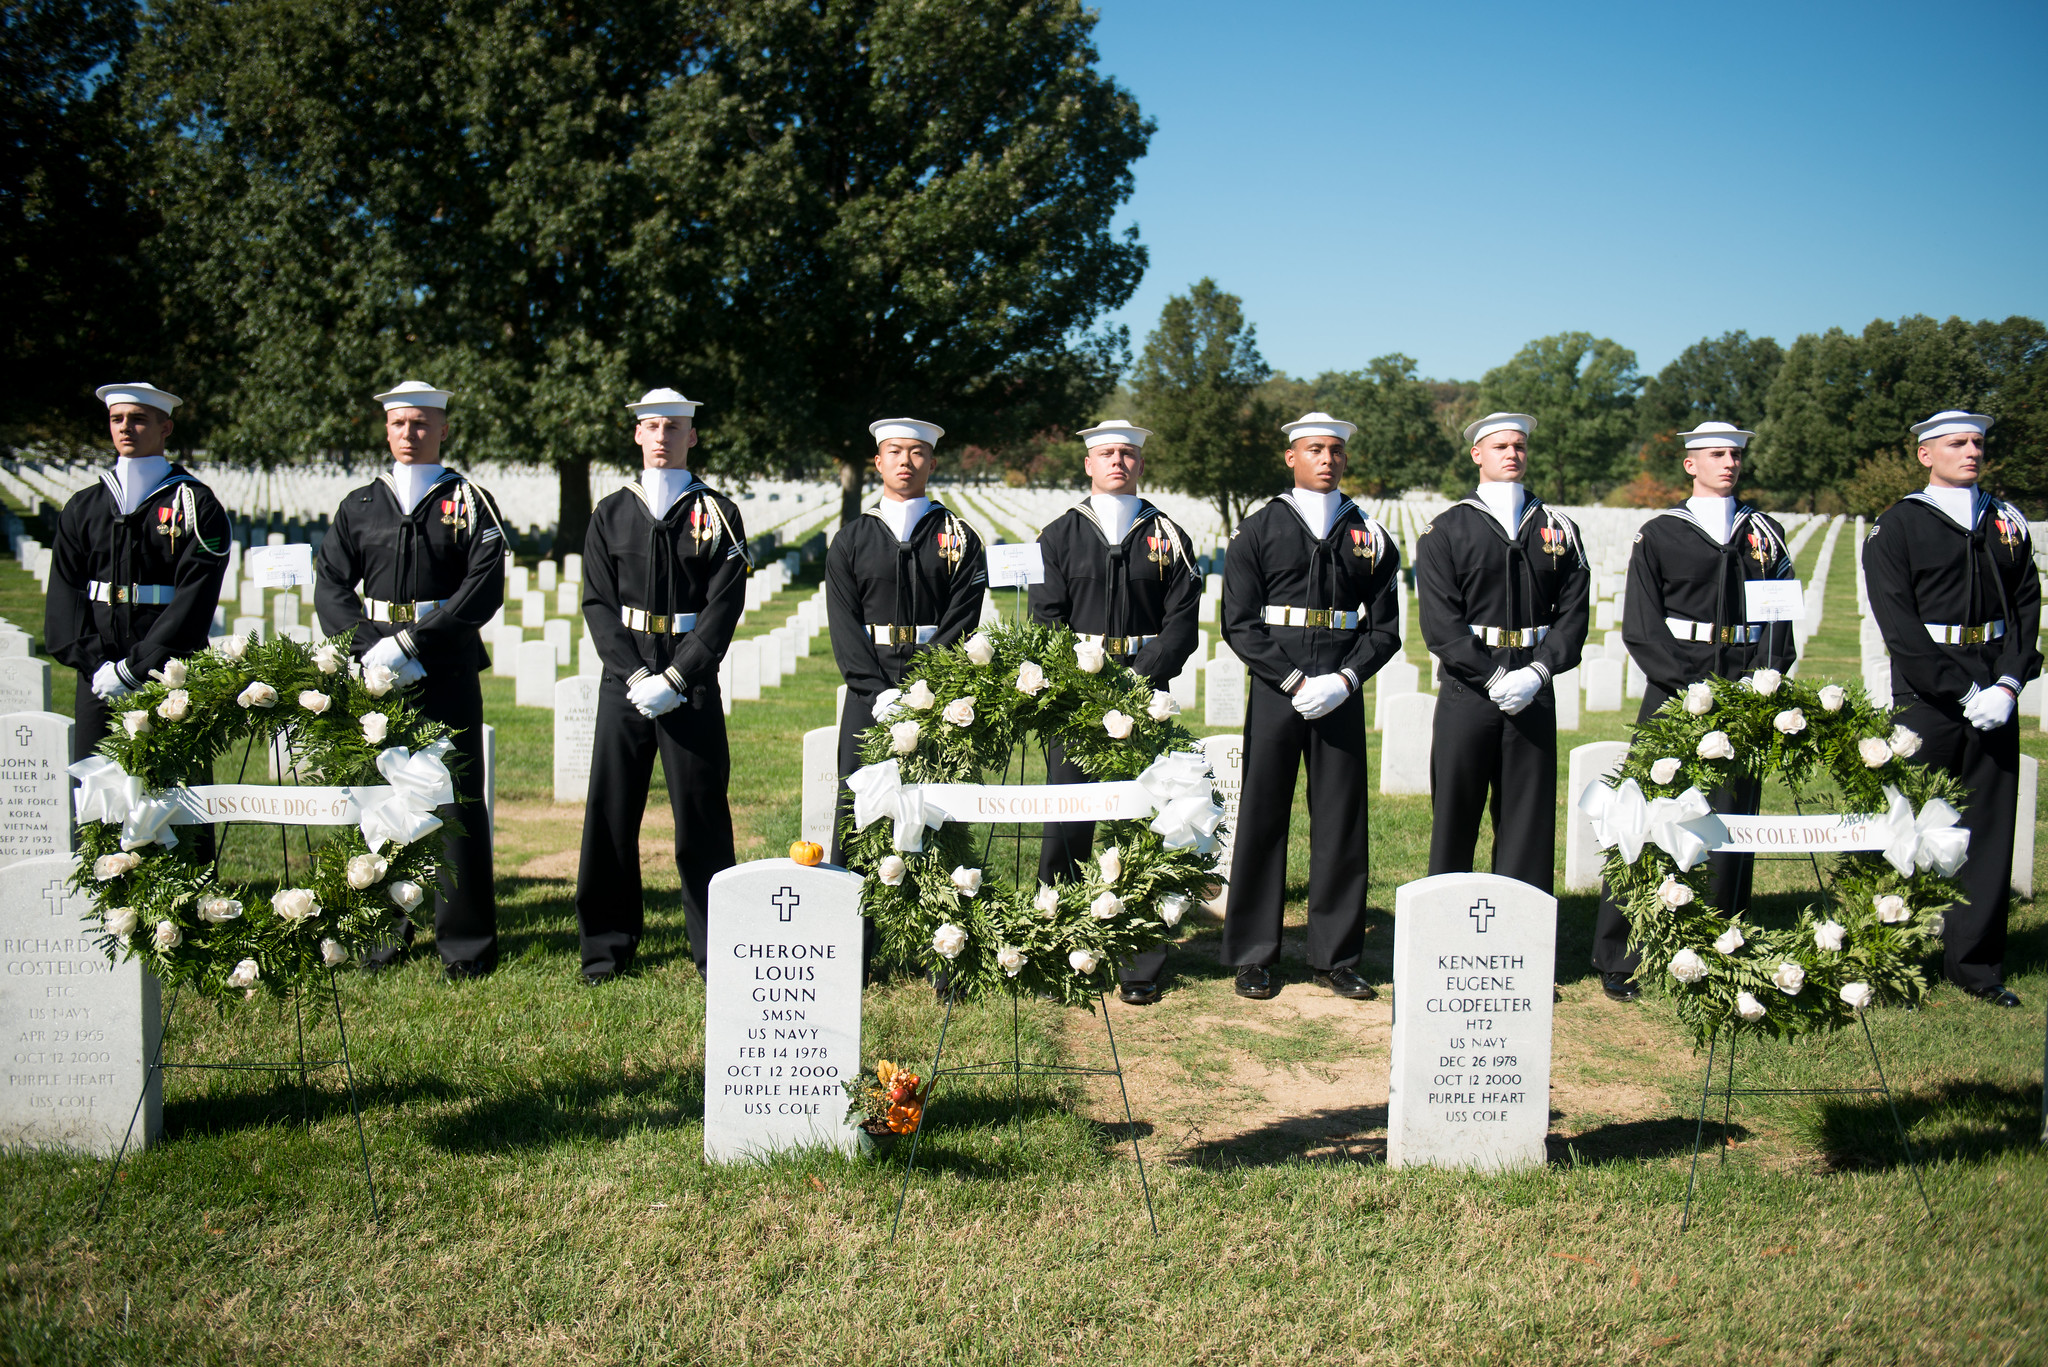 2015 ceremony commemorating the 15th anniversary of the attack on the USS Cole